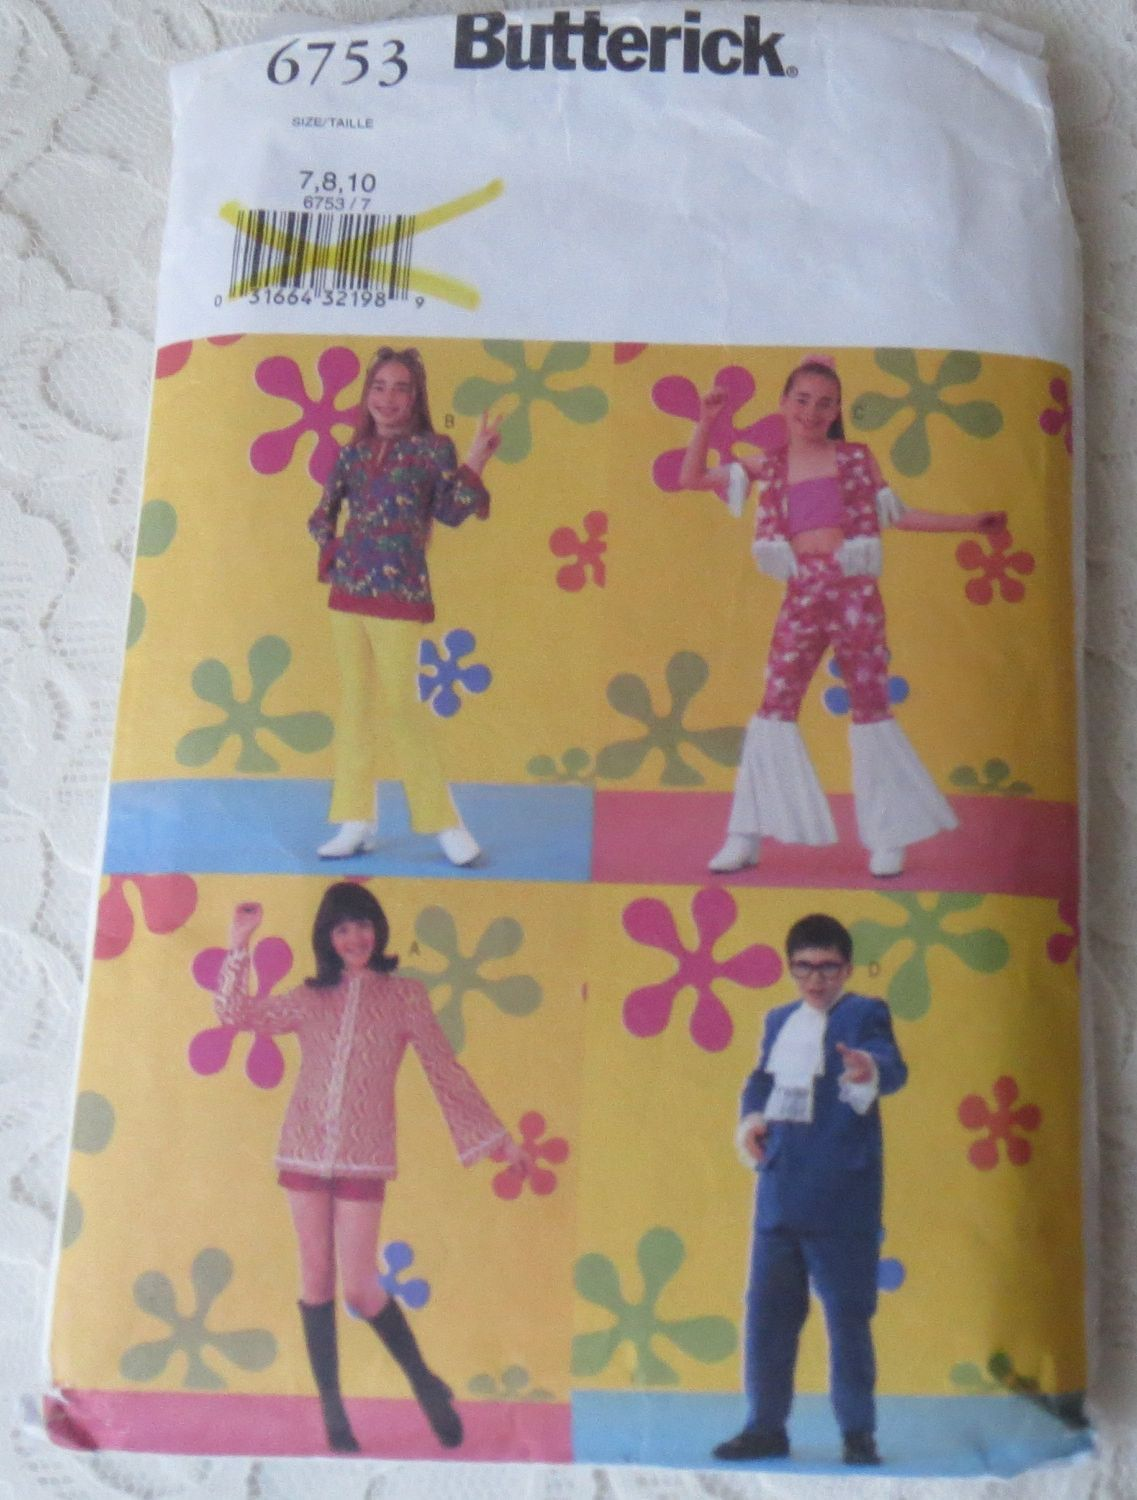 Butterick 6753 Costume Sewing Pattern Groovy Austin Powers in Childrens Boys Girls Sizes 7-10 OOP